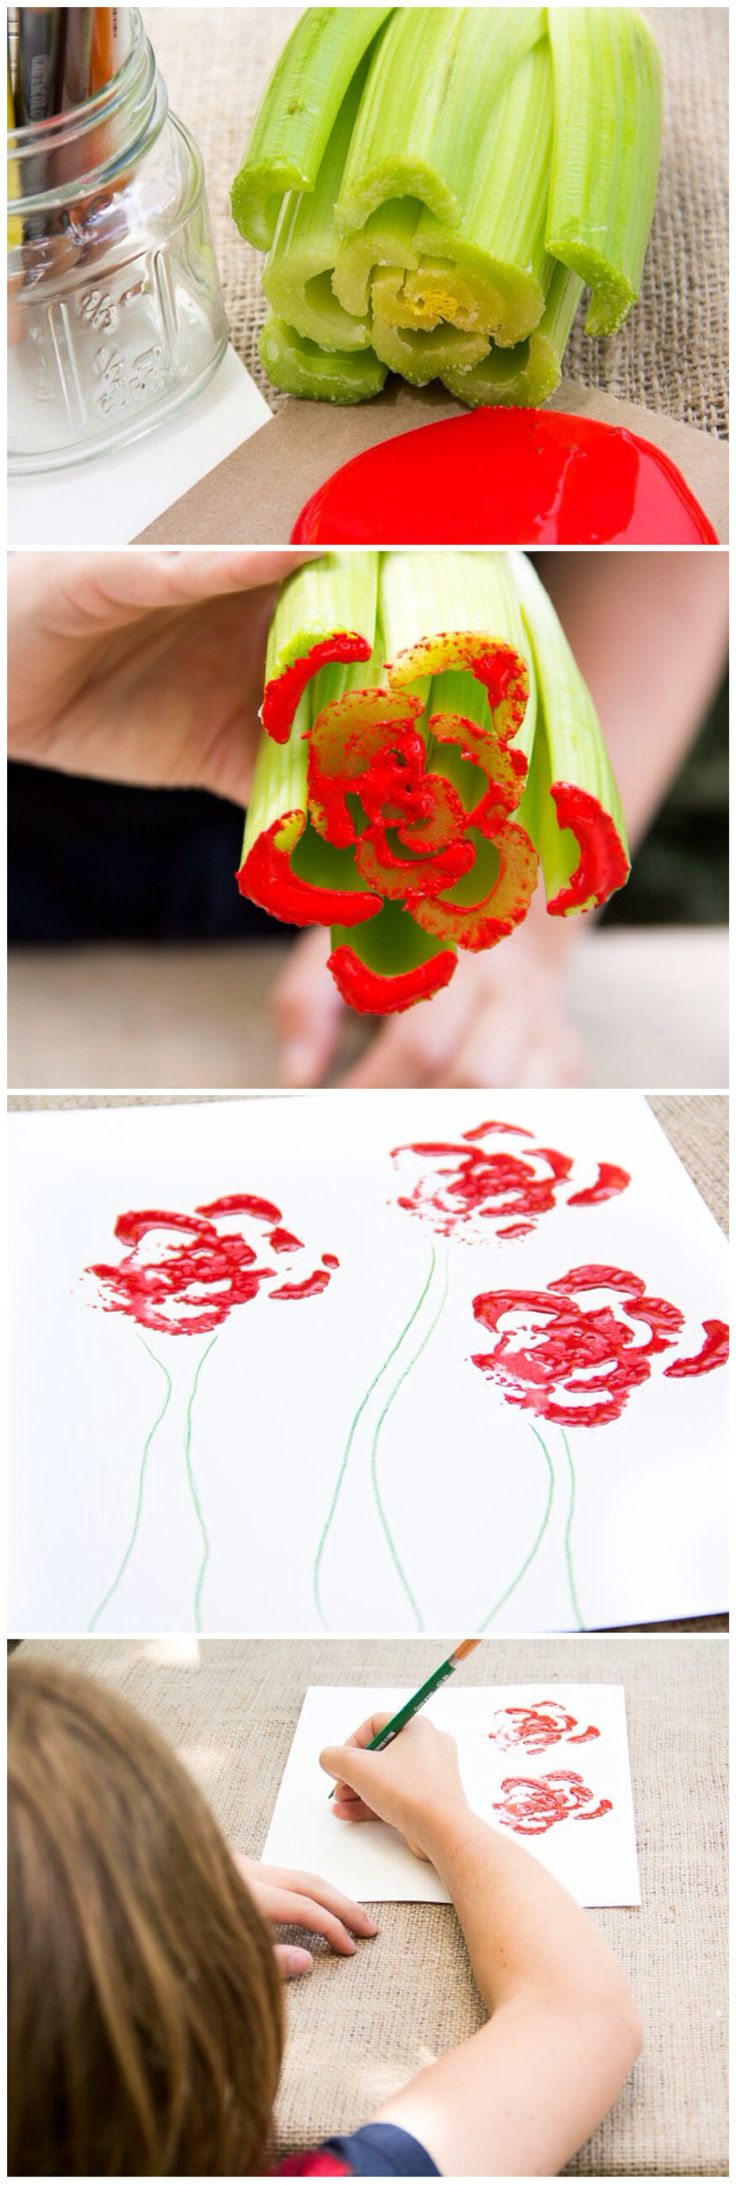 DIY Celery Painting/ Moonfrye/ Paint Crafts/ Repurposed/ Kids Crafts/ Kids Art Projects